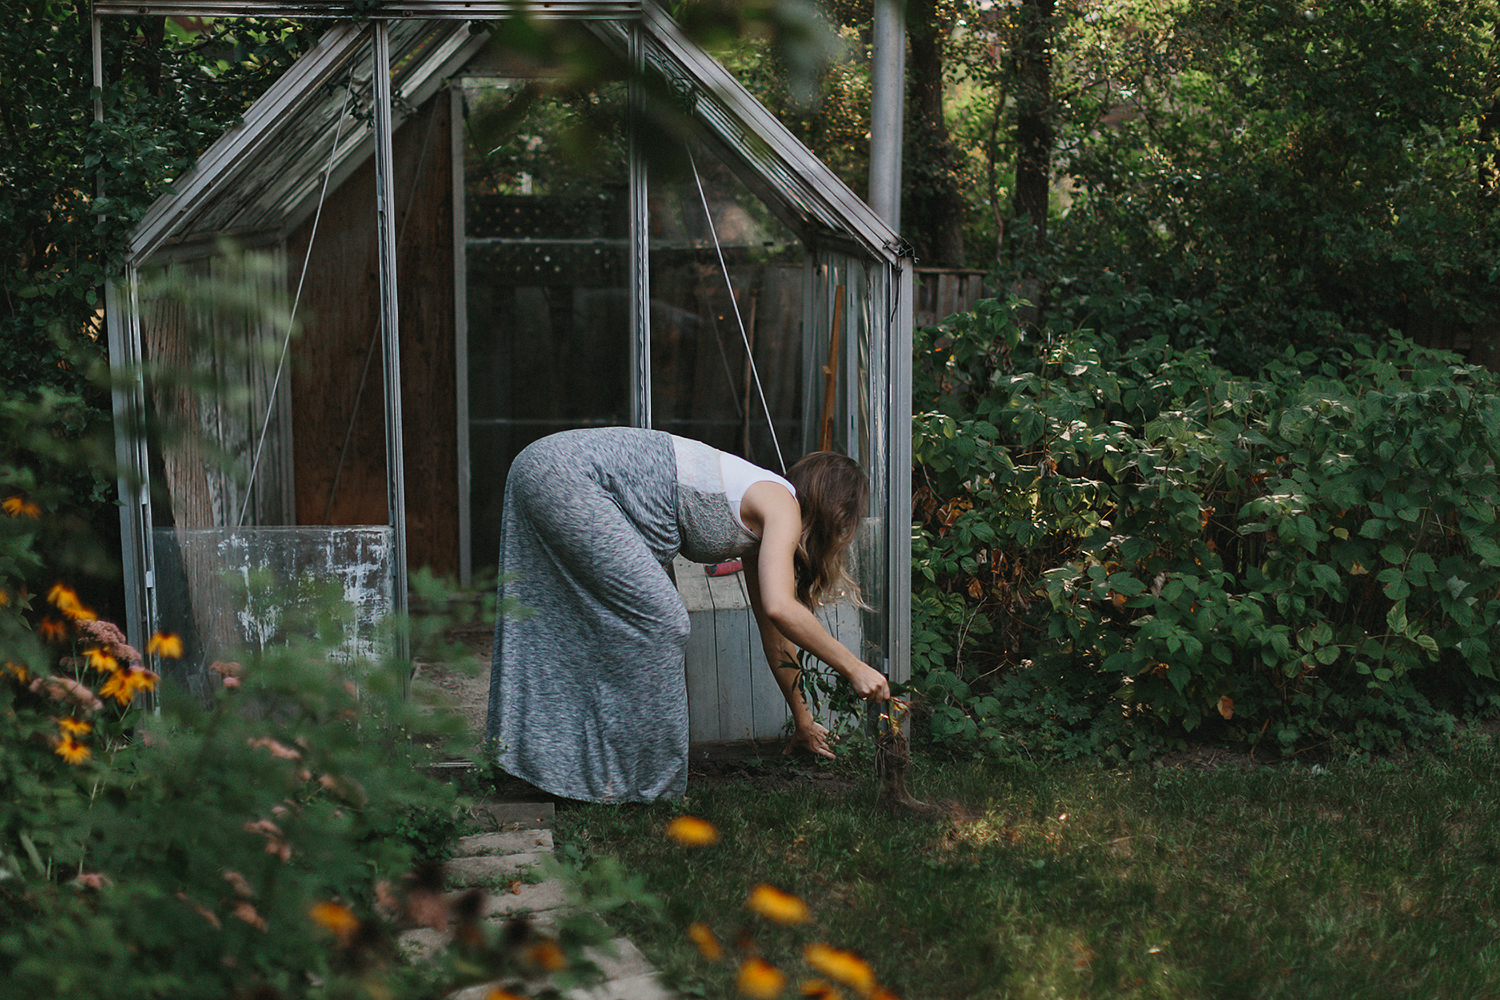 hamilton-toronto-vintage-old-home-rustic-inhome-maternity-session-toronto-maternity-photographer-ryanne-hollies-photography-candid-documentary-lifestyle-session-pregancy-momma-to-be-gardening-in-backyard-baby-on-the-way.jpg